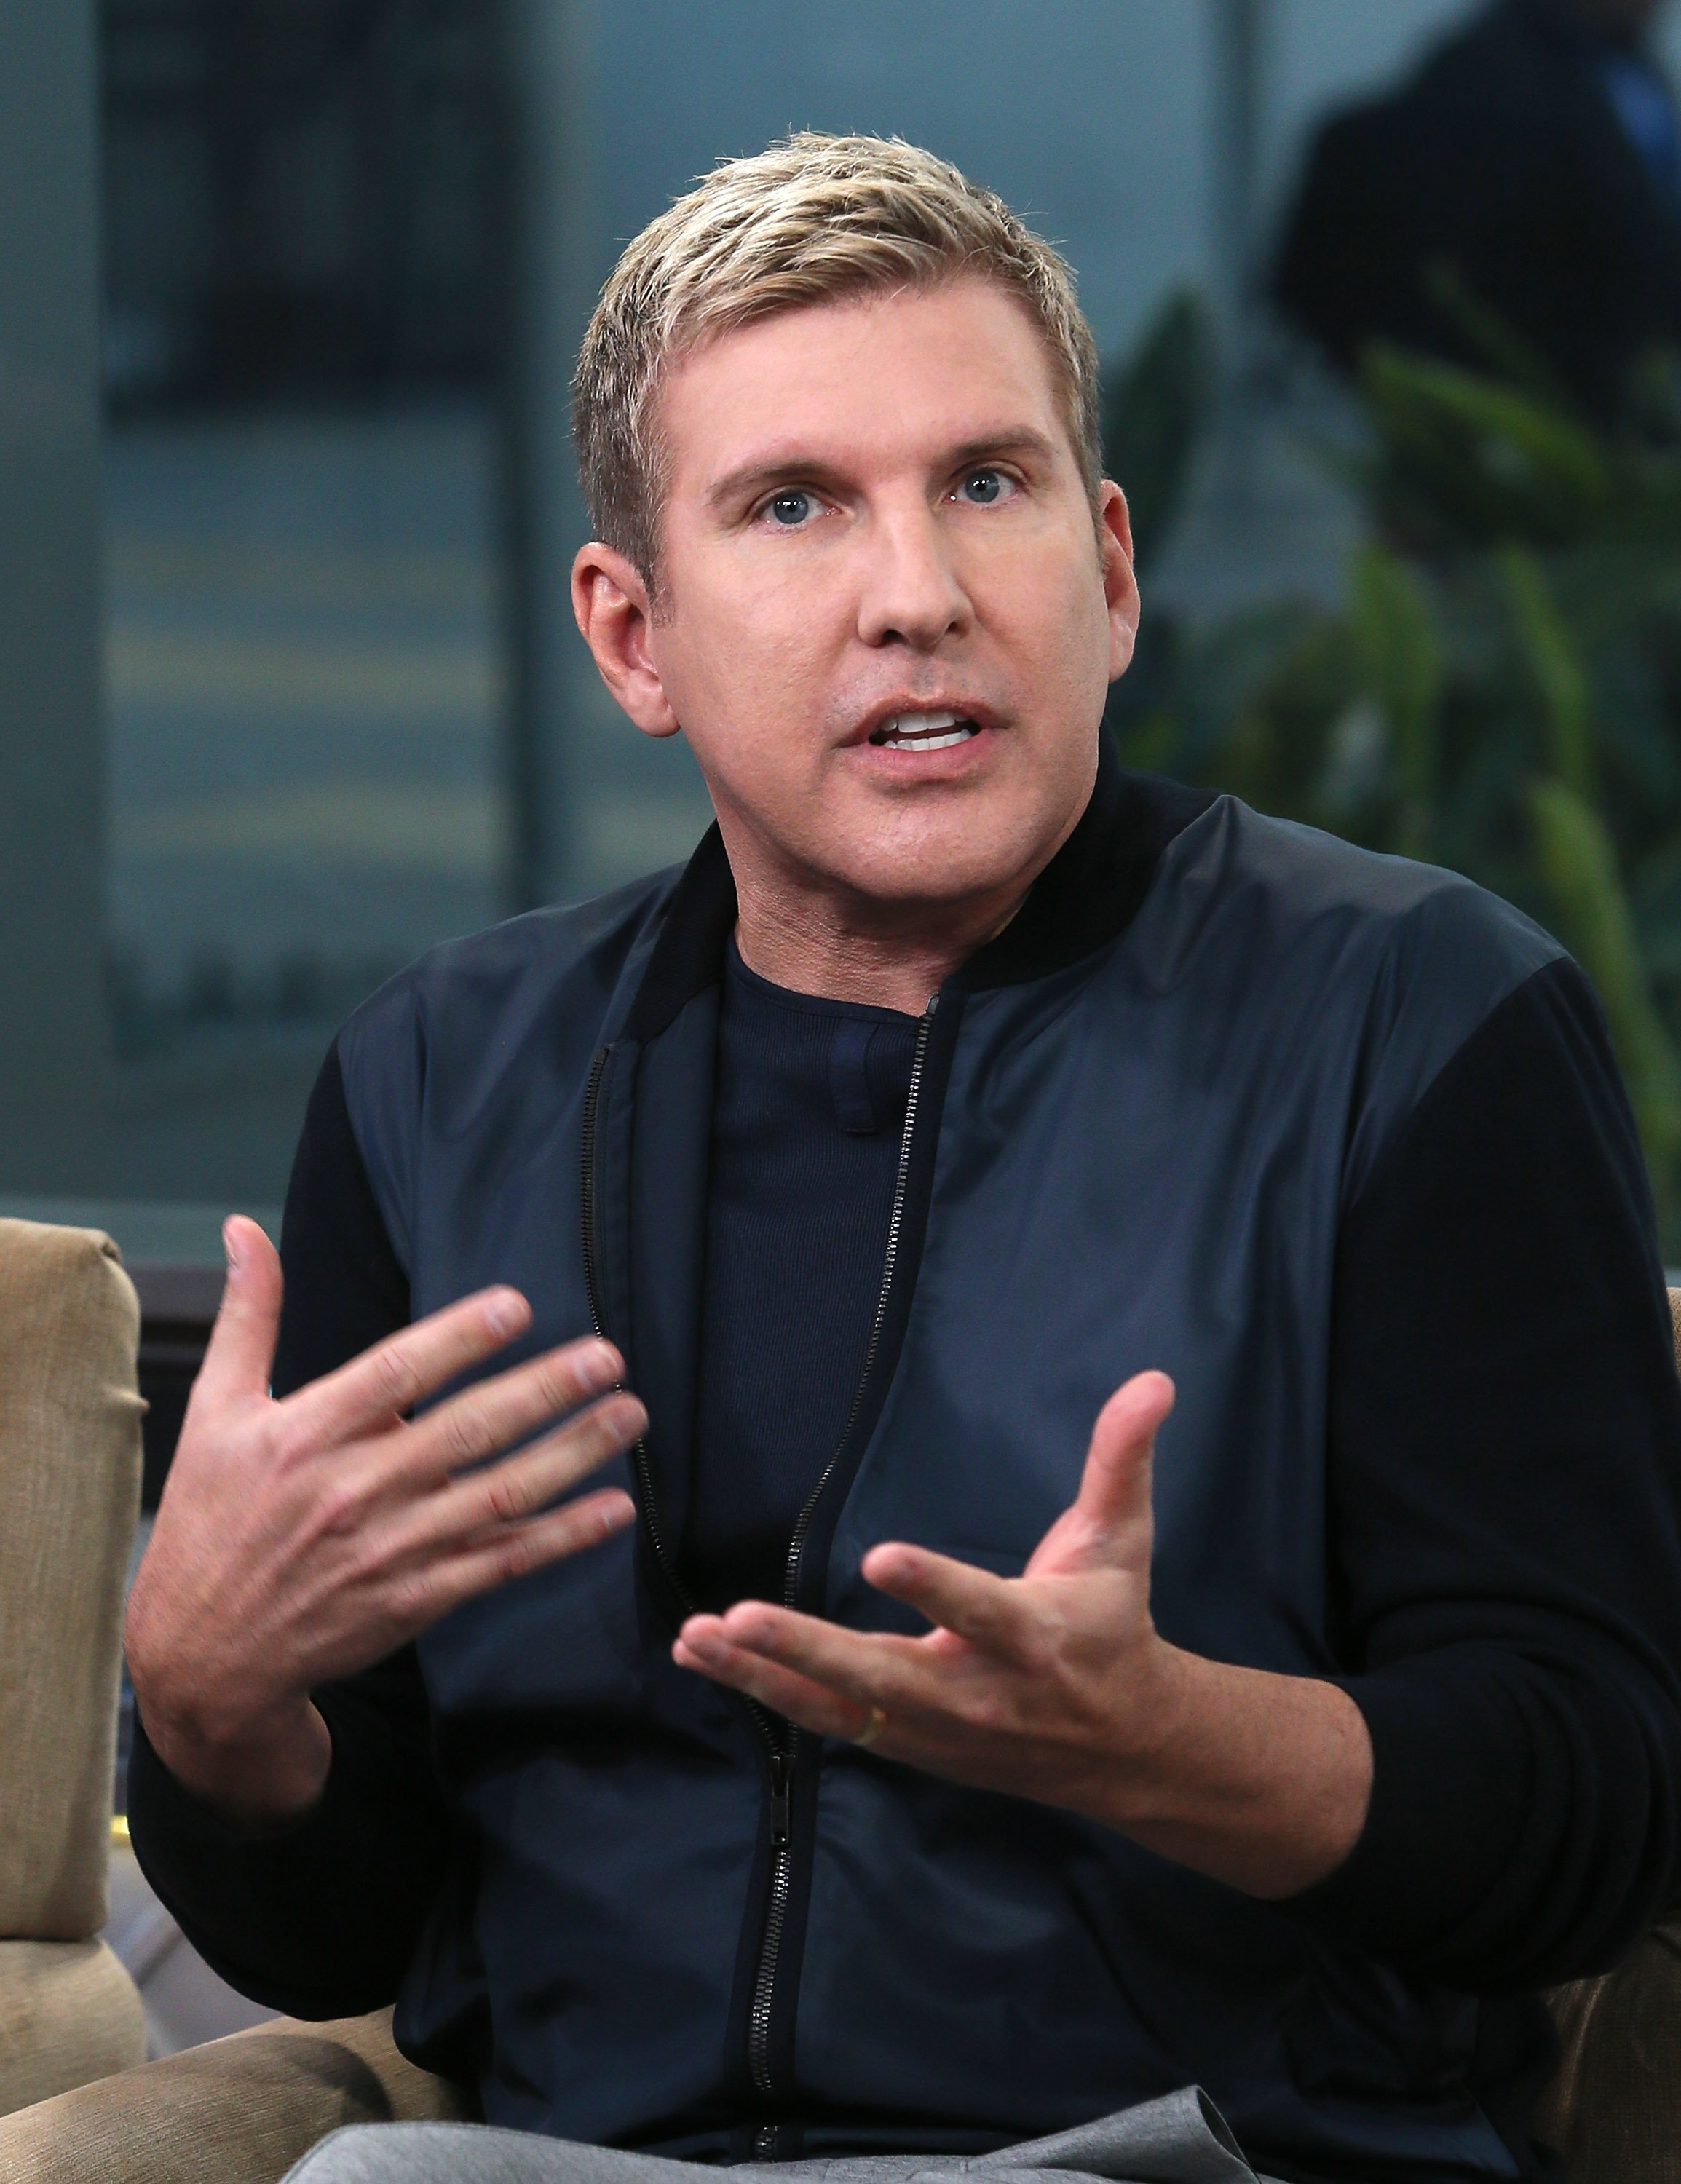 Todd Chrisley visits Hollywood Today Live at W Hollywood on February 24, 2017 in Hollywood, California | Photo: Getty Images